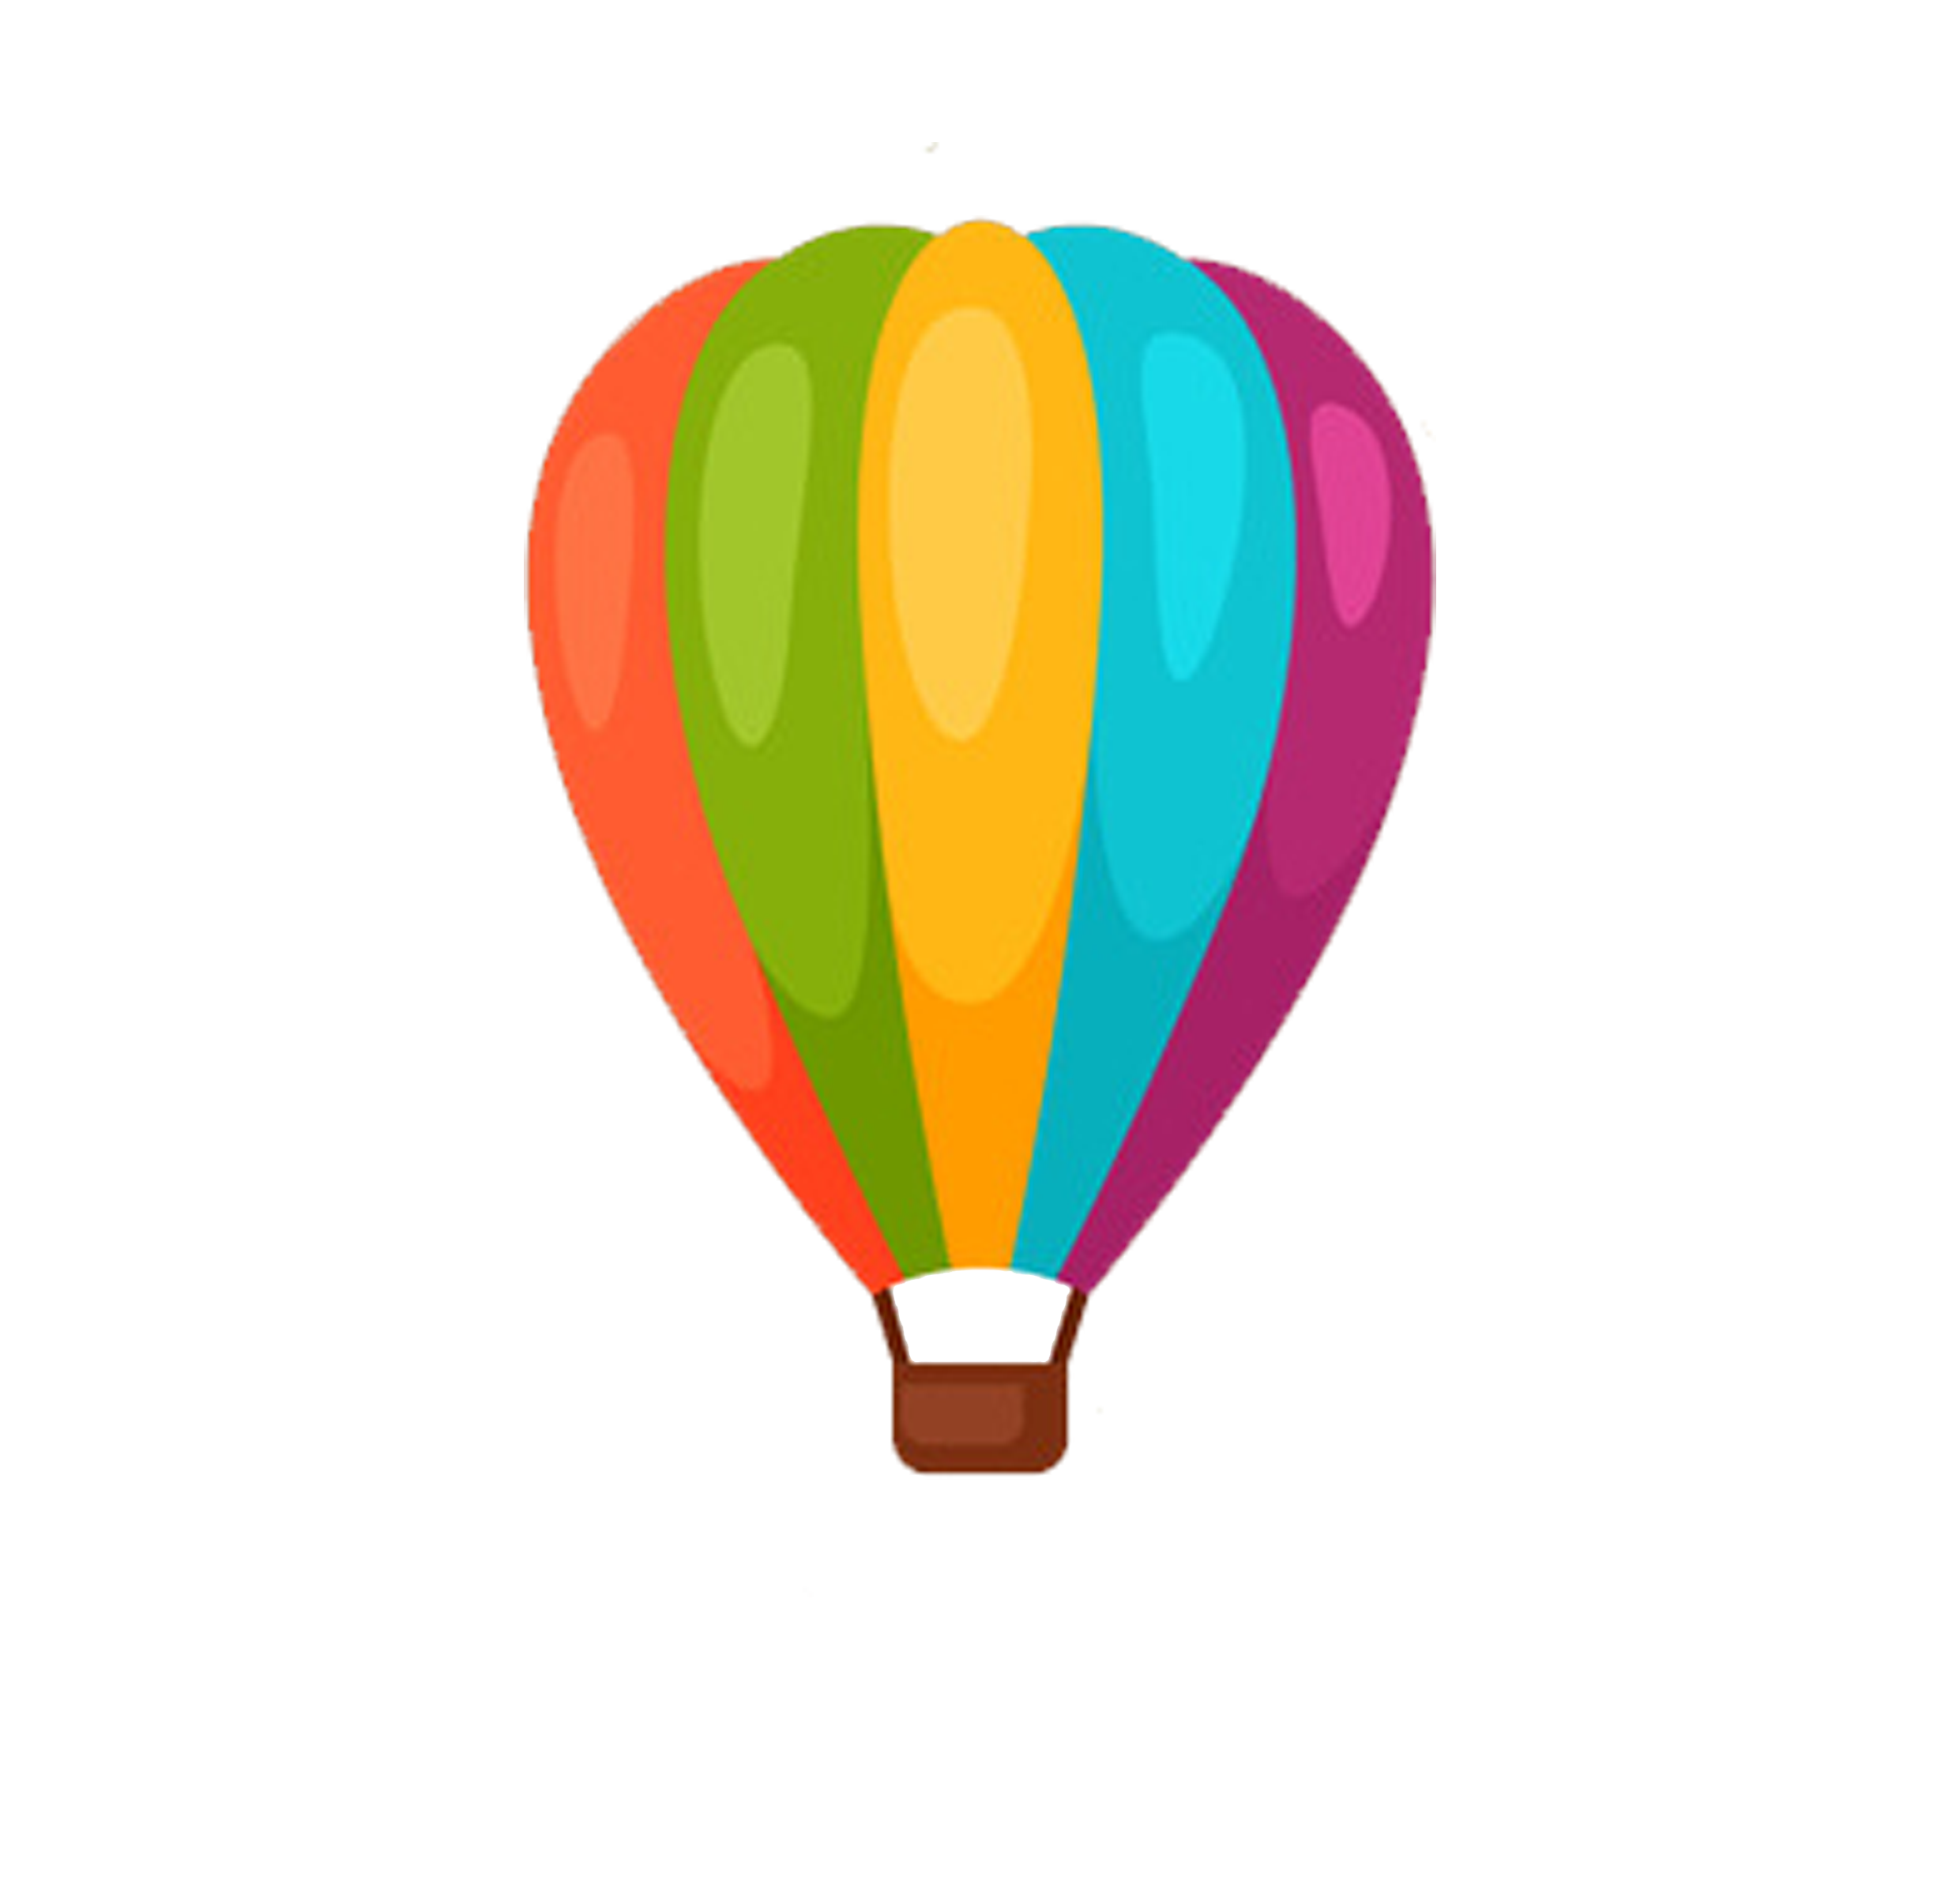 Gas clipart air ballon. Hot balloon cartoon